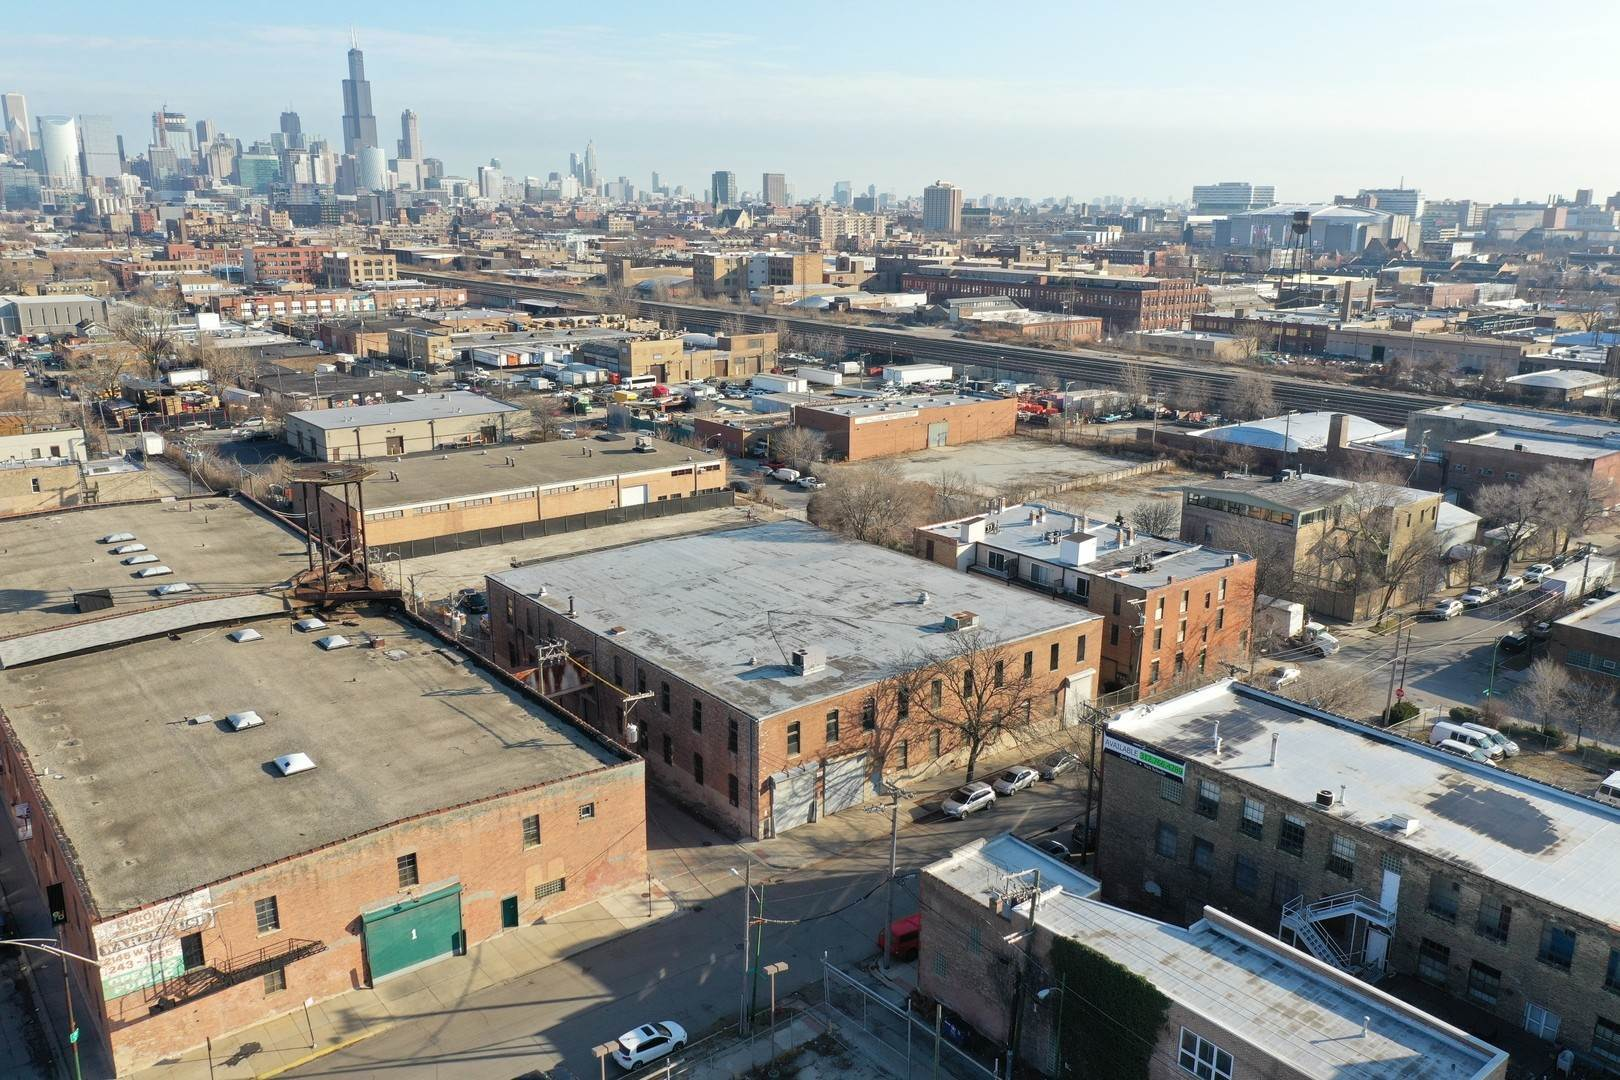 Commercial for Sale at 457 N Leavitt Street Chicago, Illinois 60612 United States